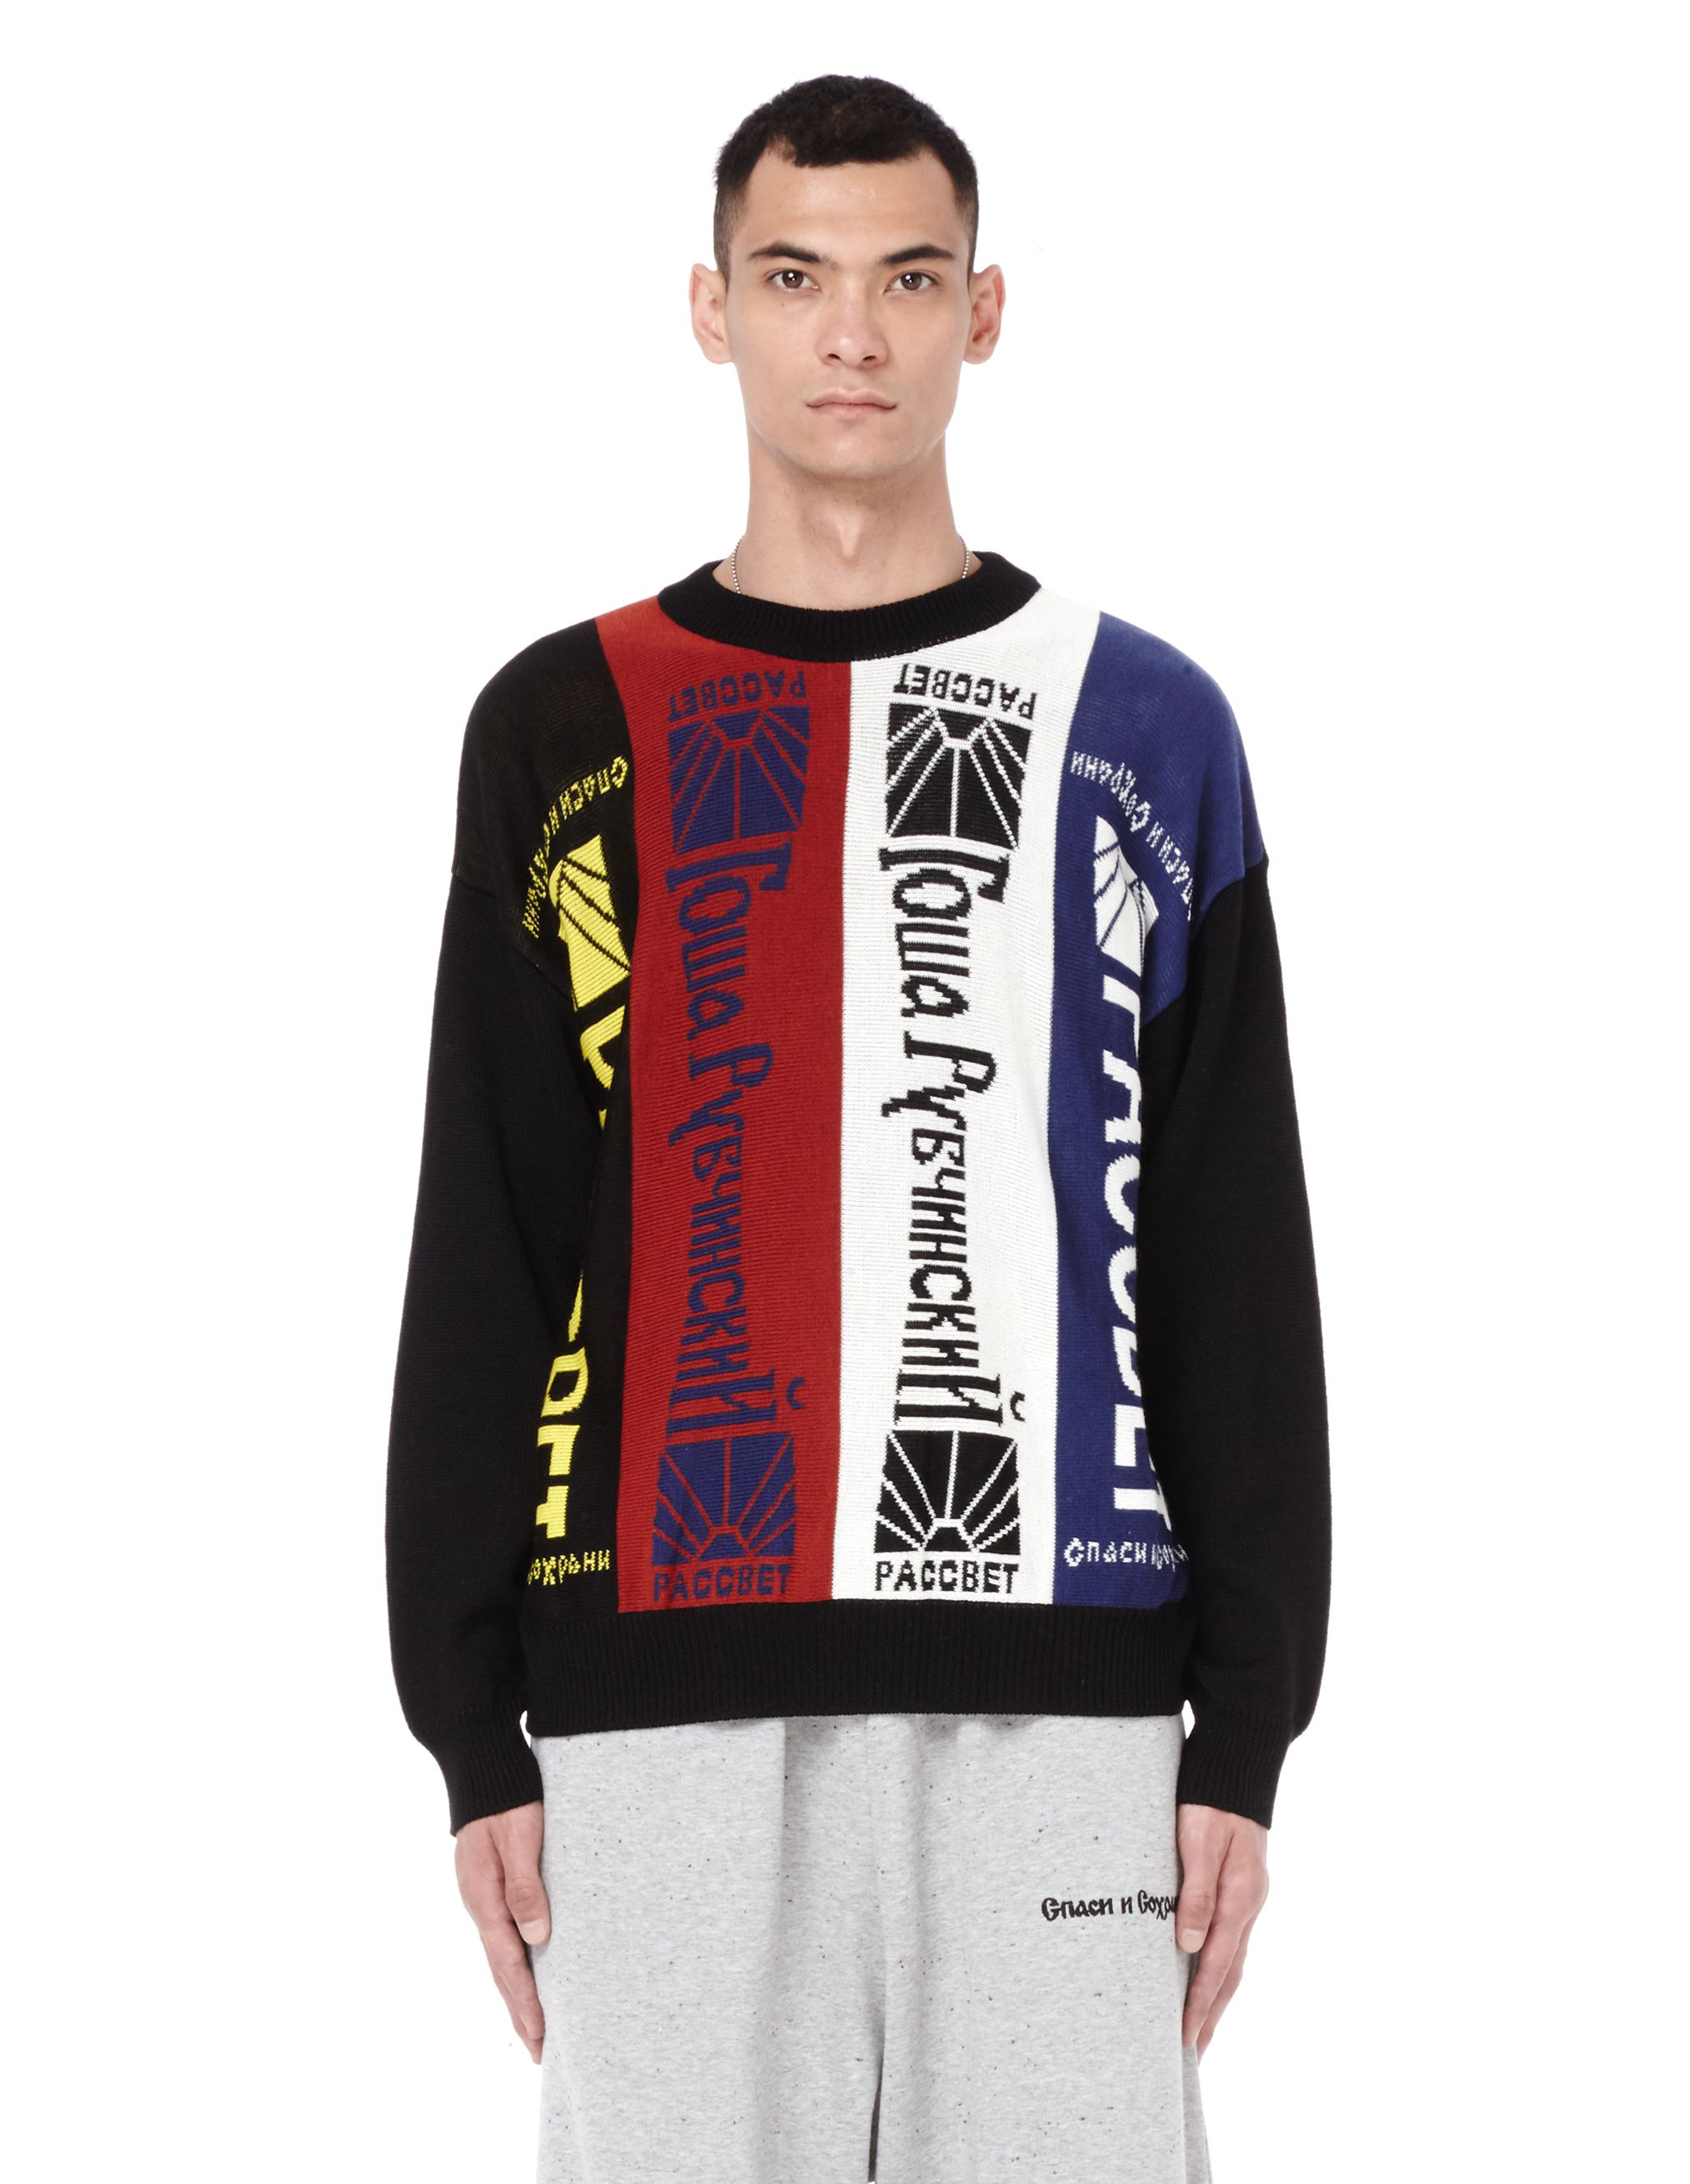 f28670a00a499 Wool and acrylic sweater by Gosha Rubchinskiy — SVMoscow